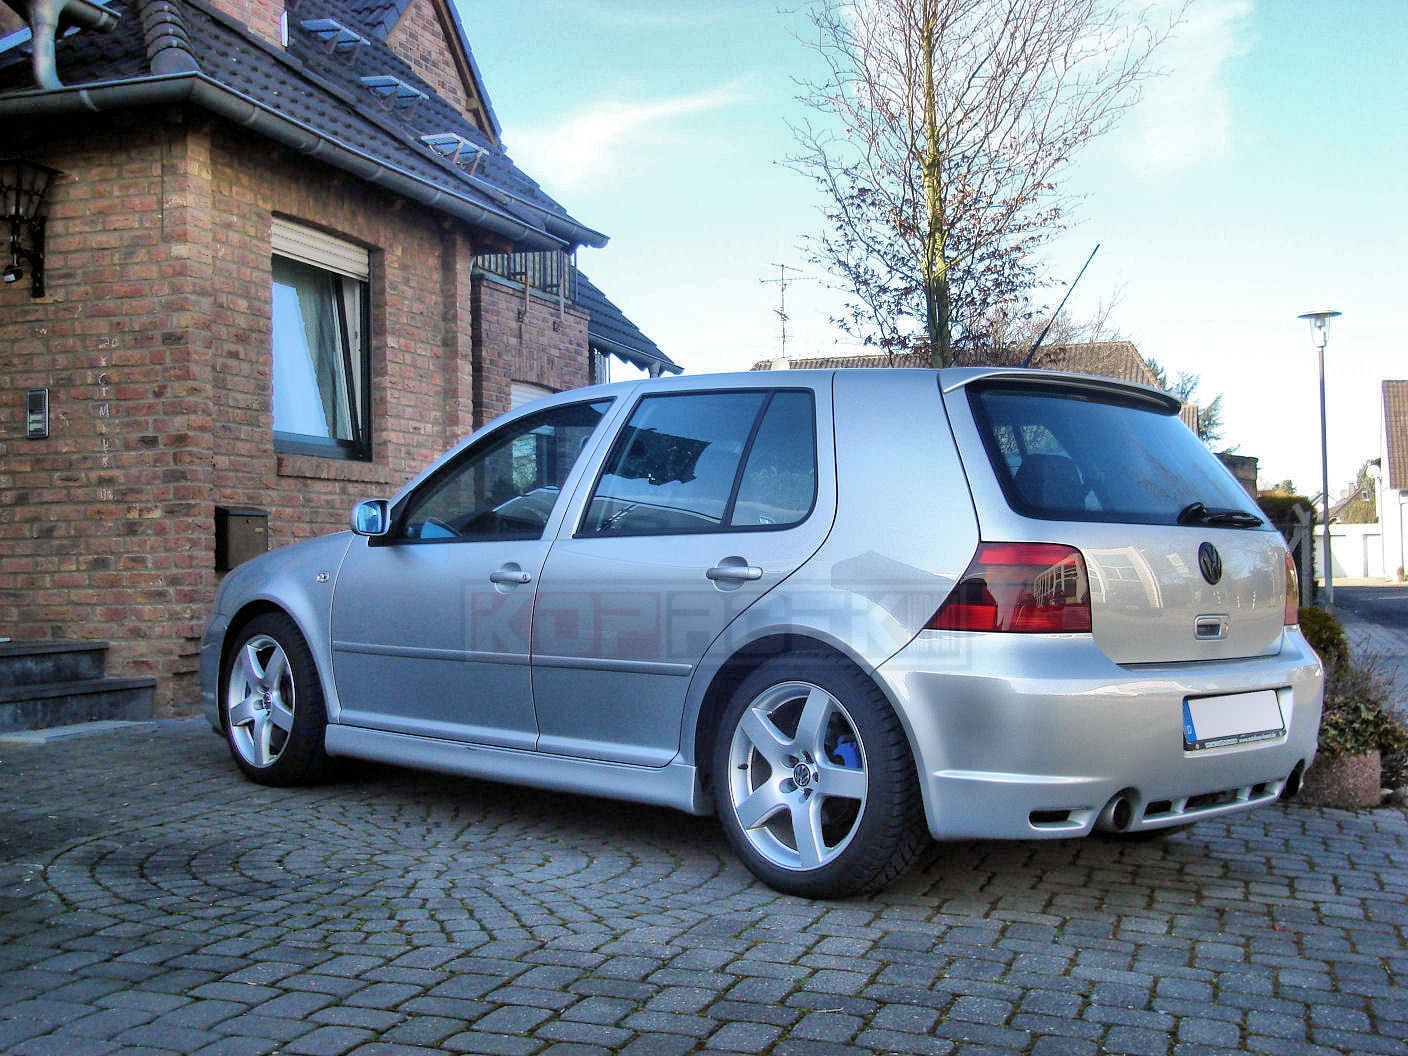 VW Golf 4 R32 image #11